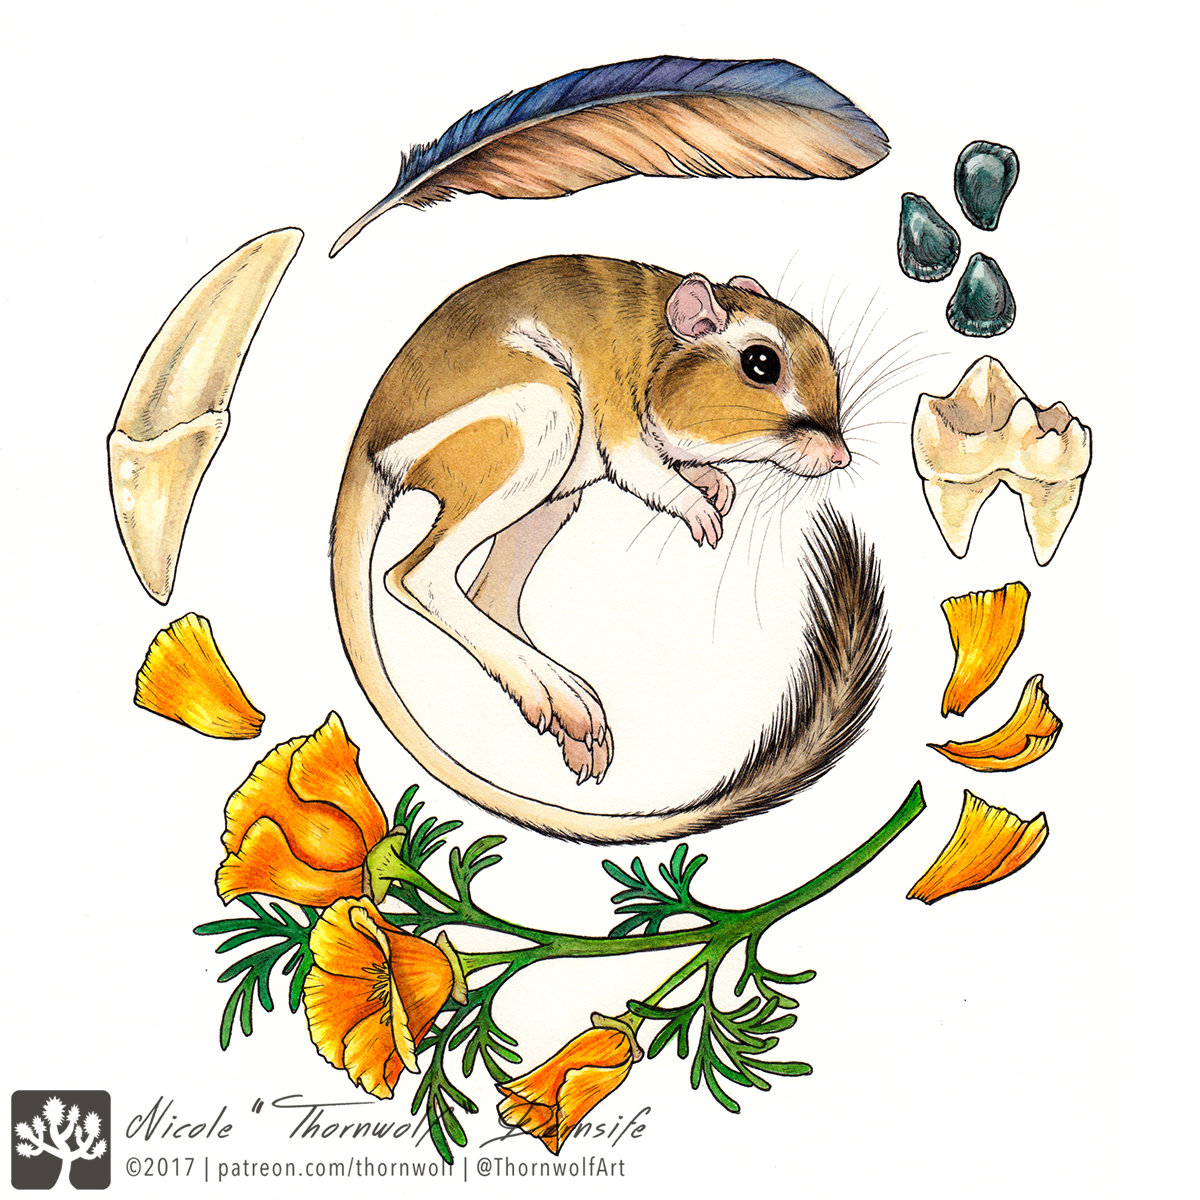 Kangaroo rat surrounded by scrub jay feather, coyote teeth, yucca seeds, and California golden poppies.